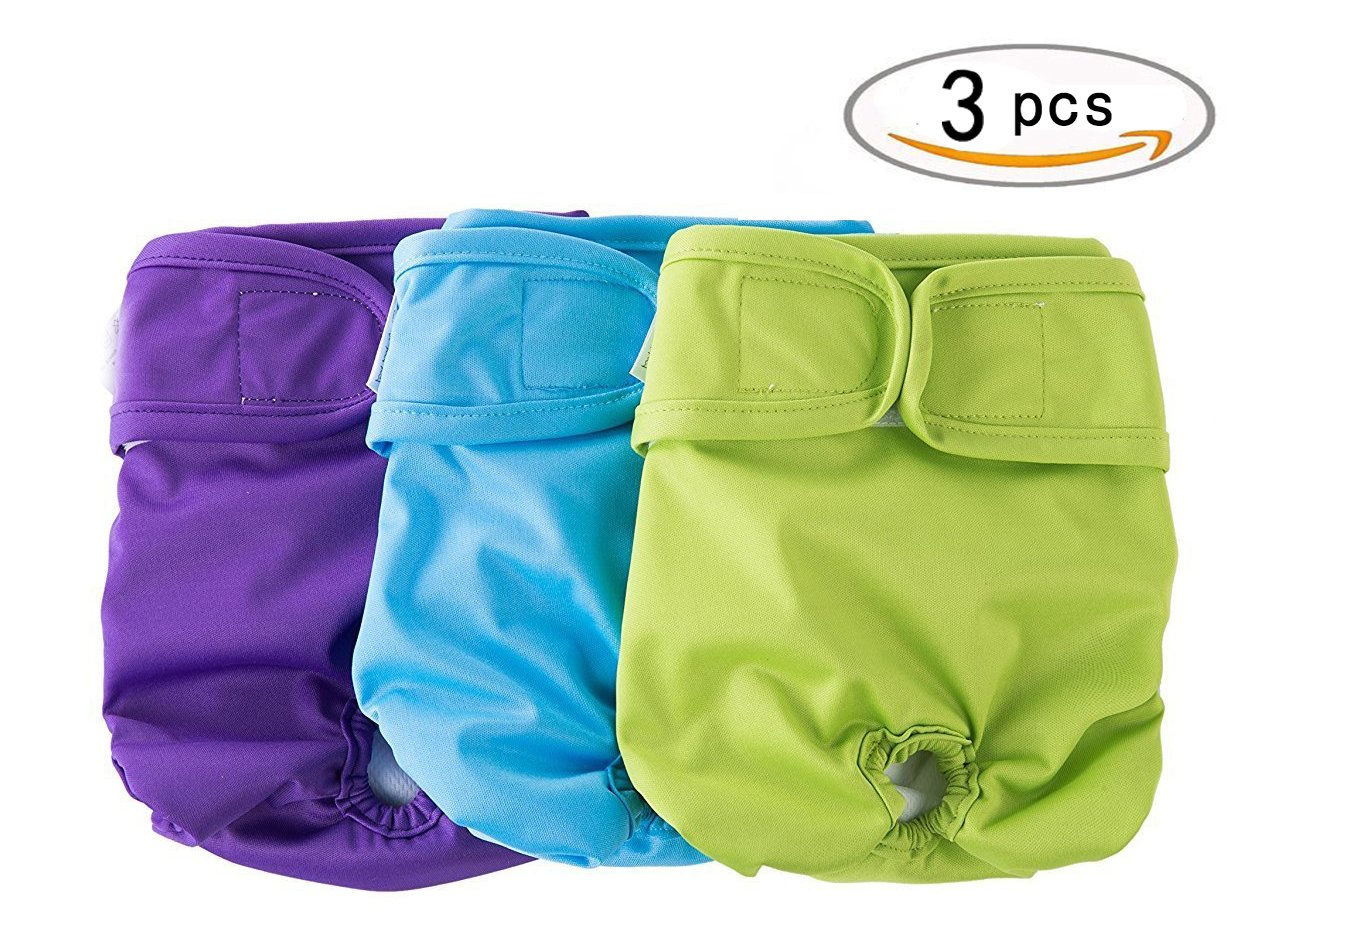 3 Pcs/set Female Dog Diapers Washable & Resuable for Girls Doggie Leak-Proof Wrap Sanitary Panties Pupteck